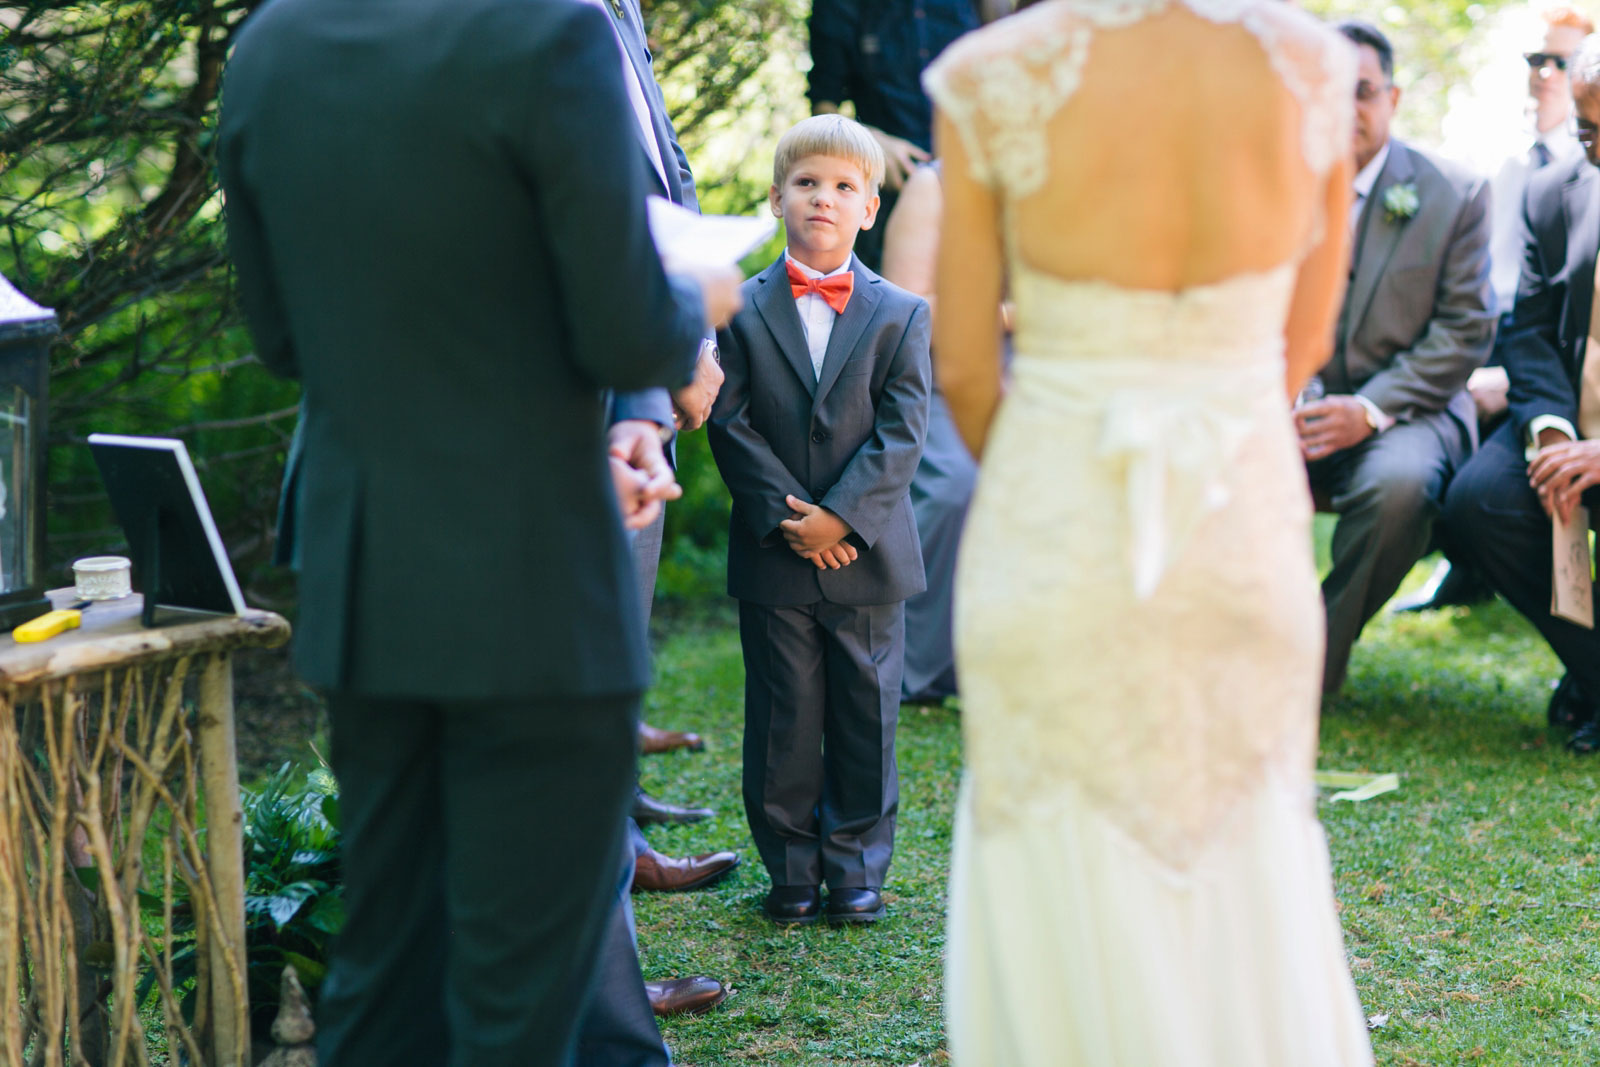 Ring bearer in suit and pink bow tie looks up at groom during wedding ceremony